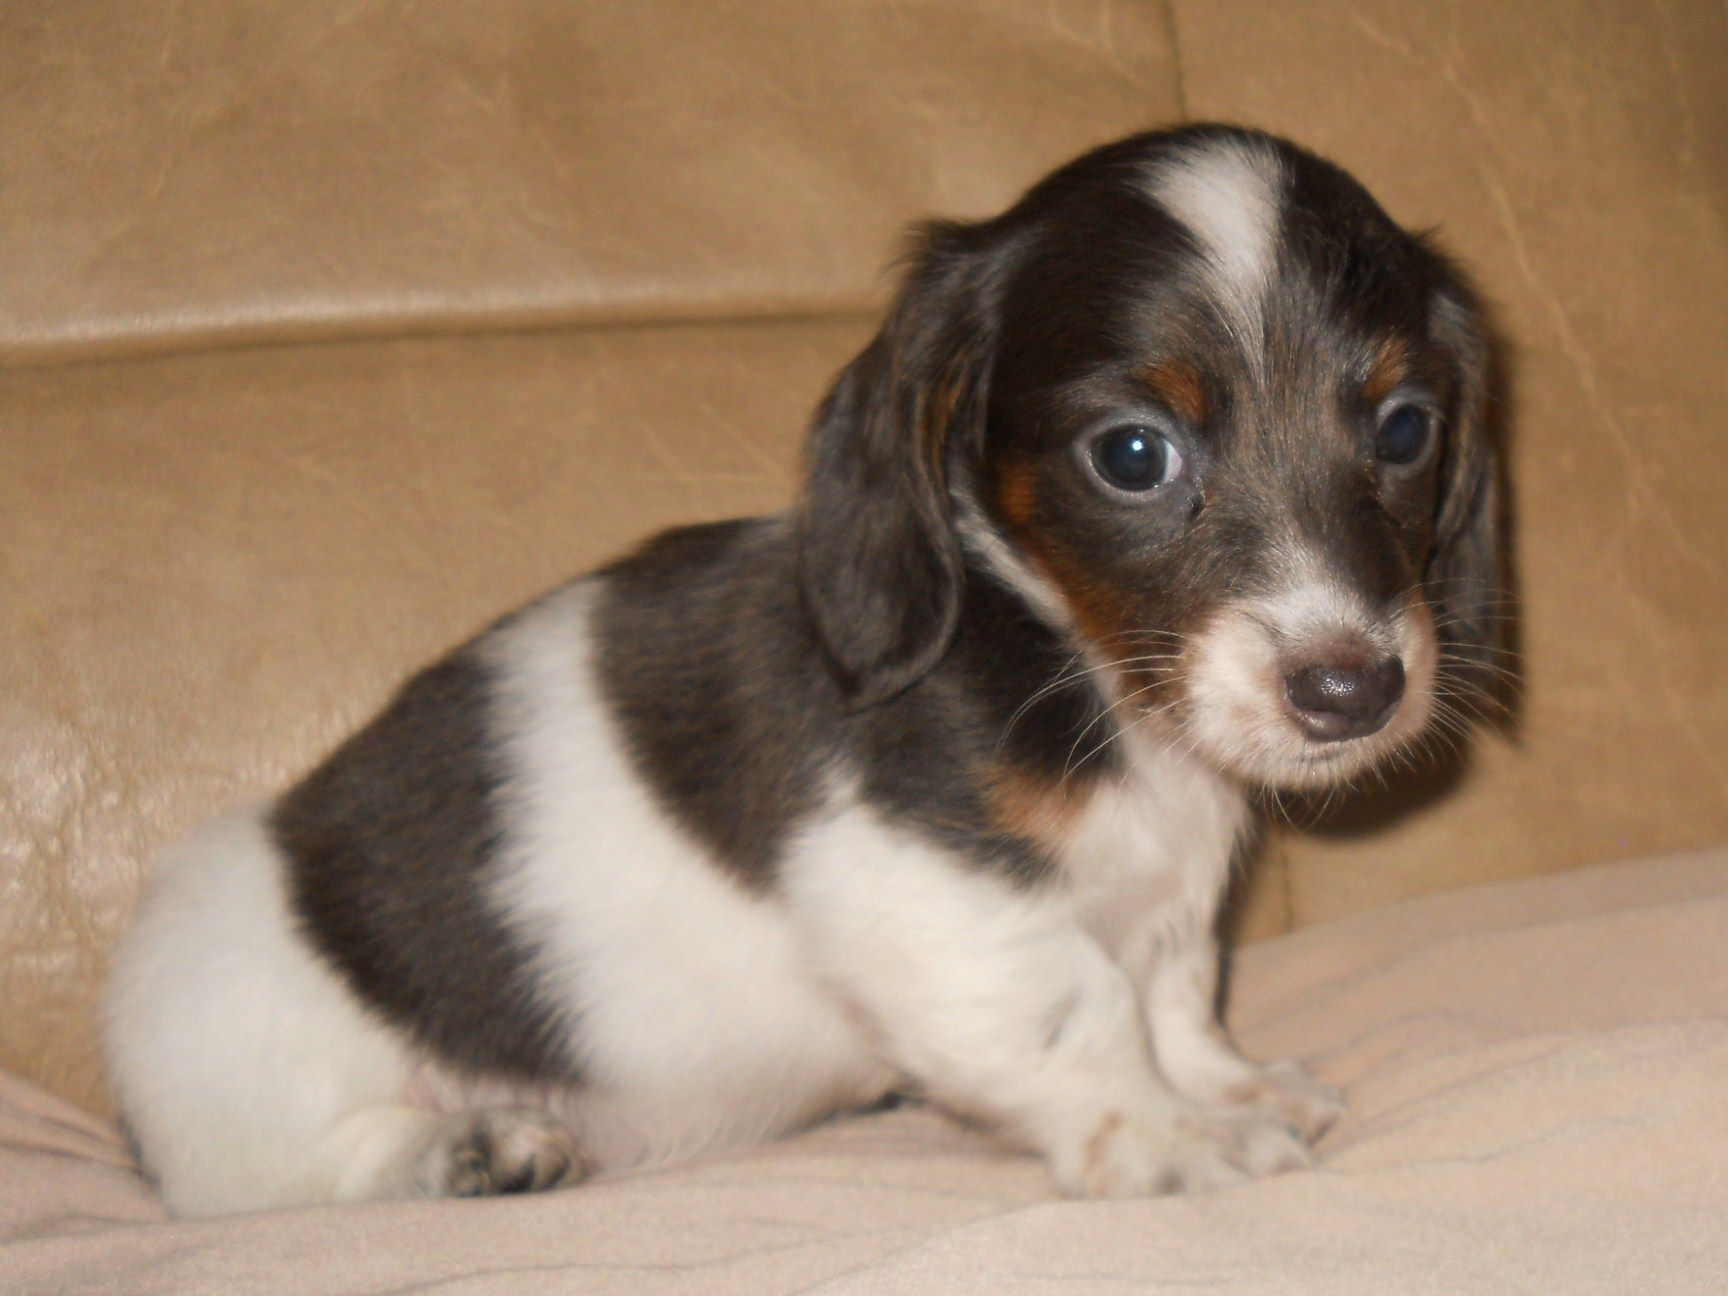 Gray Mini Dachshunds For Sale Dapple Dachshund Puppies For Sale